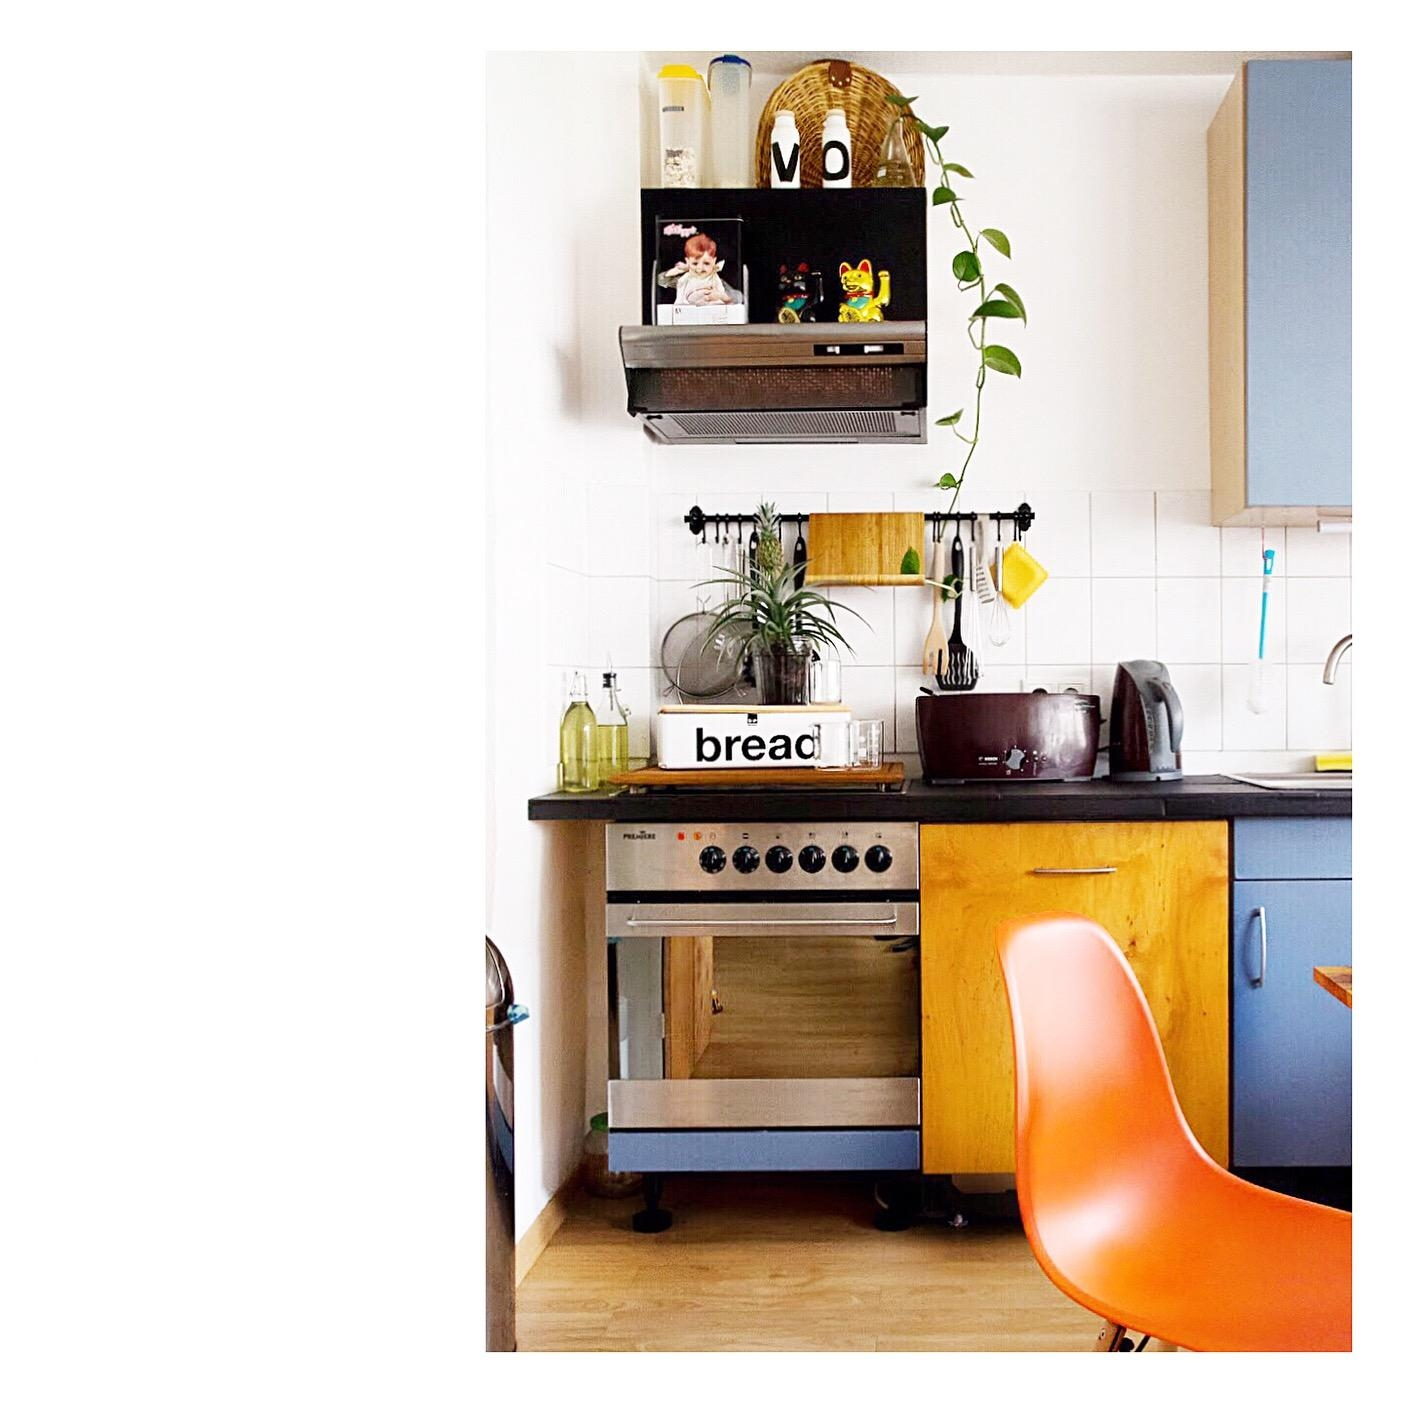 #kitchen #black #plants #studentenbude #orange #chair #diy